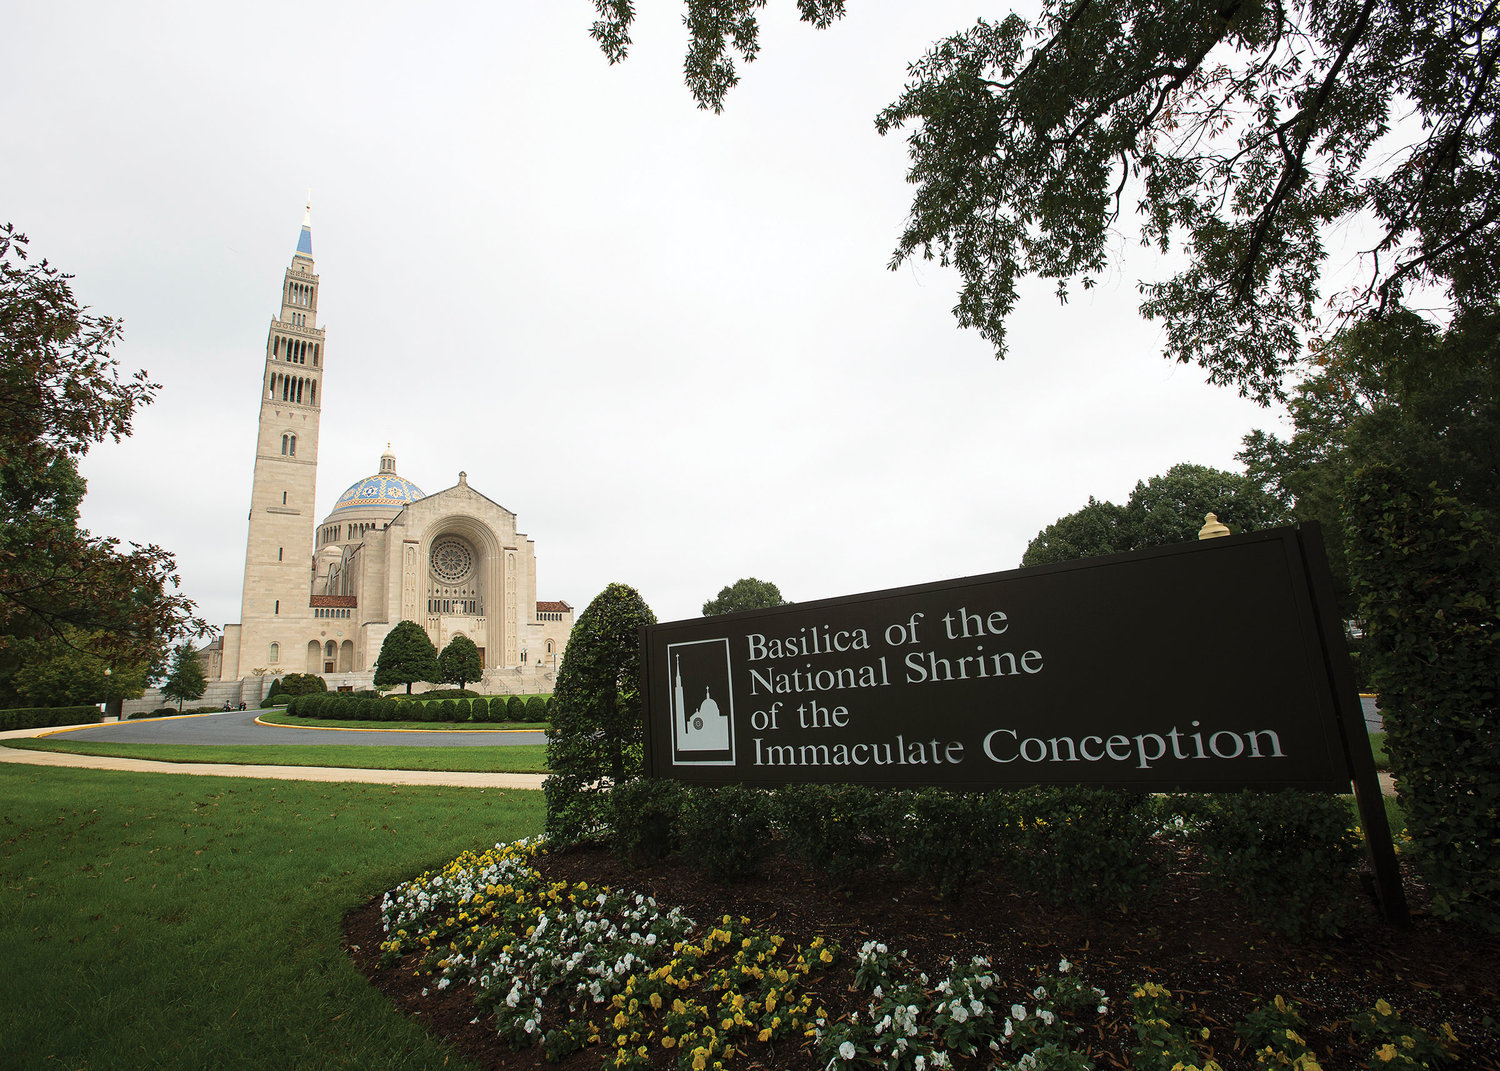 The Basilica of the National Shrine of the Immaculate Conception in Washington, D.C., is the largest Catholic church in the United States, and it is among the largest in the world. For the third time during Cardinal Dolan's tenure as Archbishop of New York, the basilica served as a pilgrimage destination for the archdiocese. A total of 300 New York pilgrims visited Oct. 6.